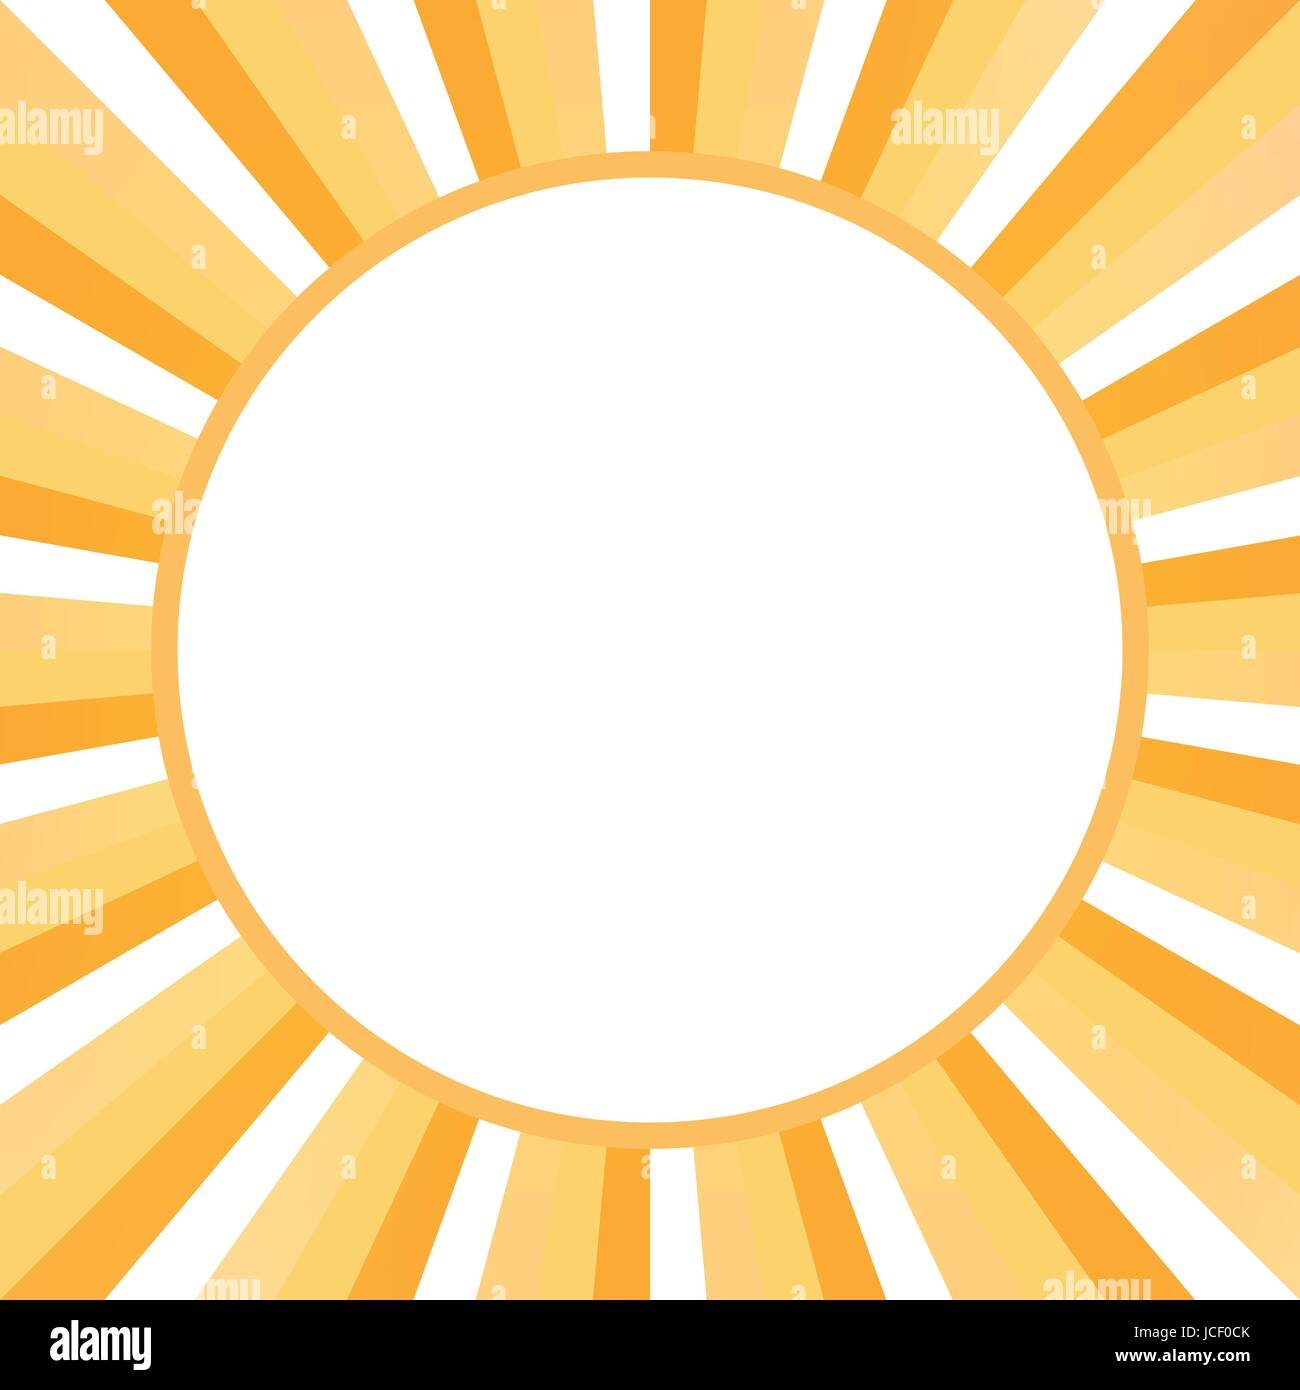 Sunburst Frame White Orange Rays Stock Photos & Sunburst Frame White ...